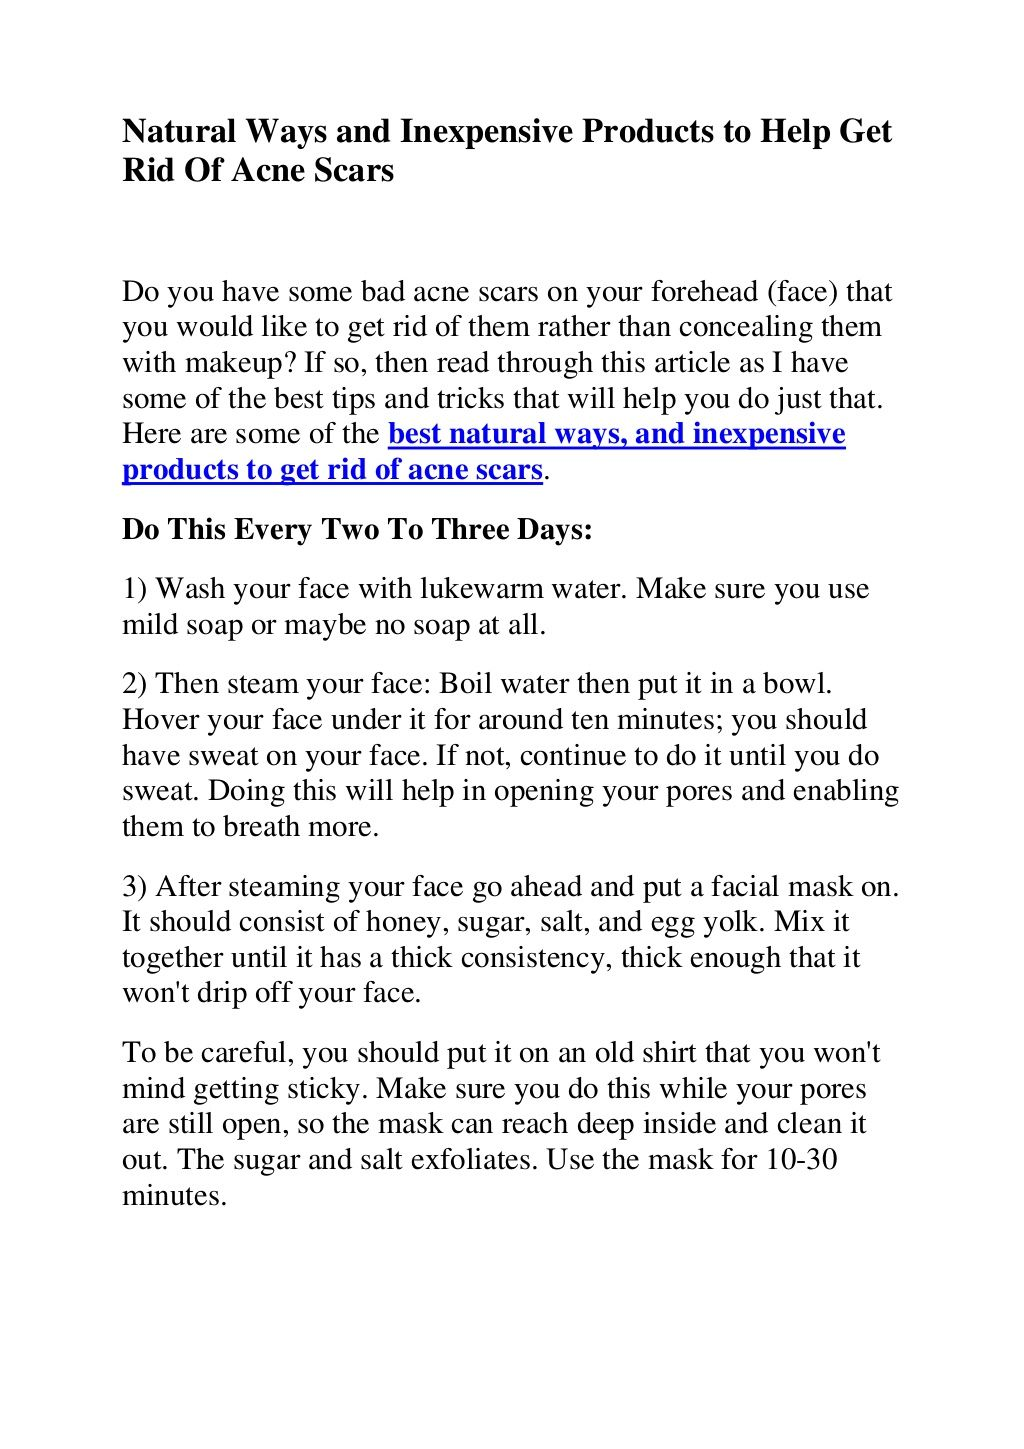 natural-ways-and-inexpensive-products-to-help-get-rid-of-acne-scars